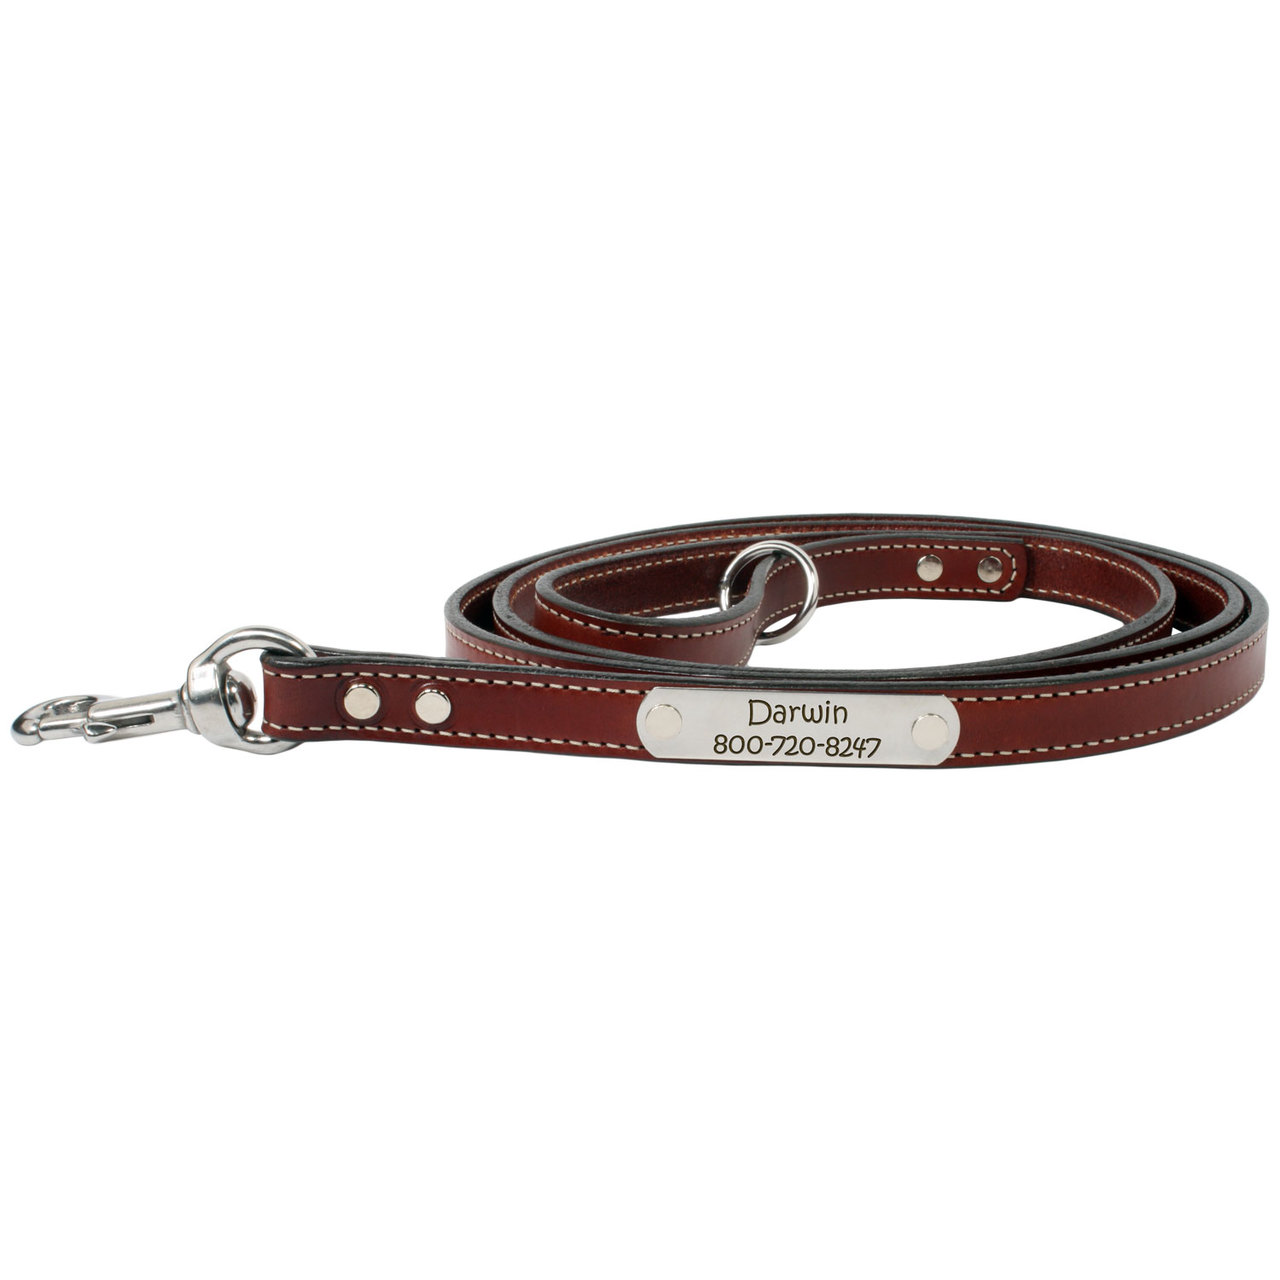 Personalized Bridle Leather Snap Leash - Chestnut Brown